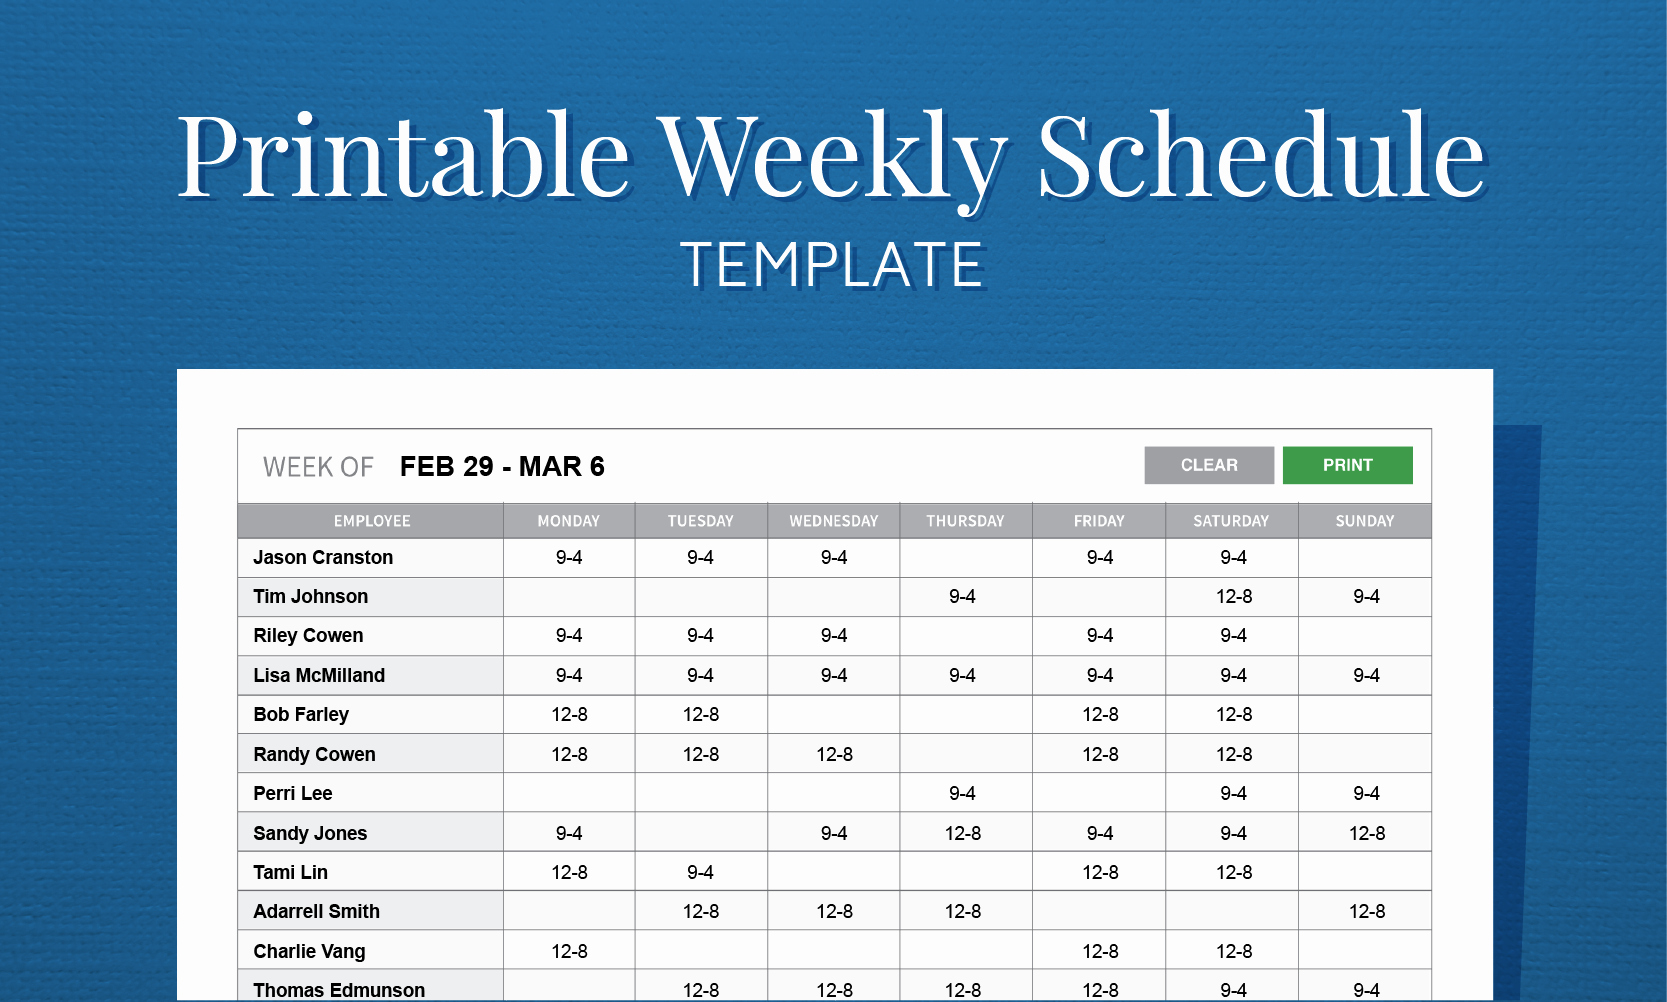 Restaurant Work Schedule Template Luxury Free Printable Weekly Work Schedule Template for Employee